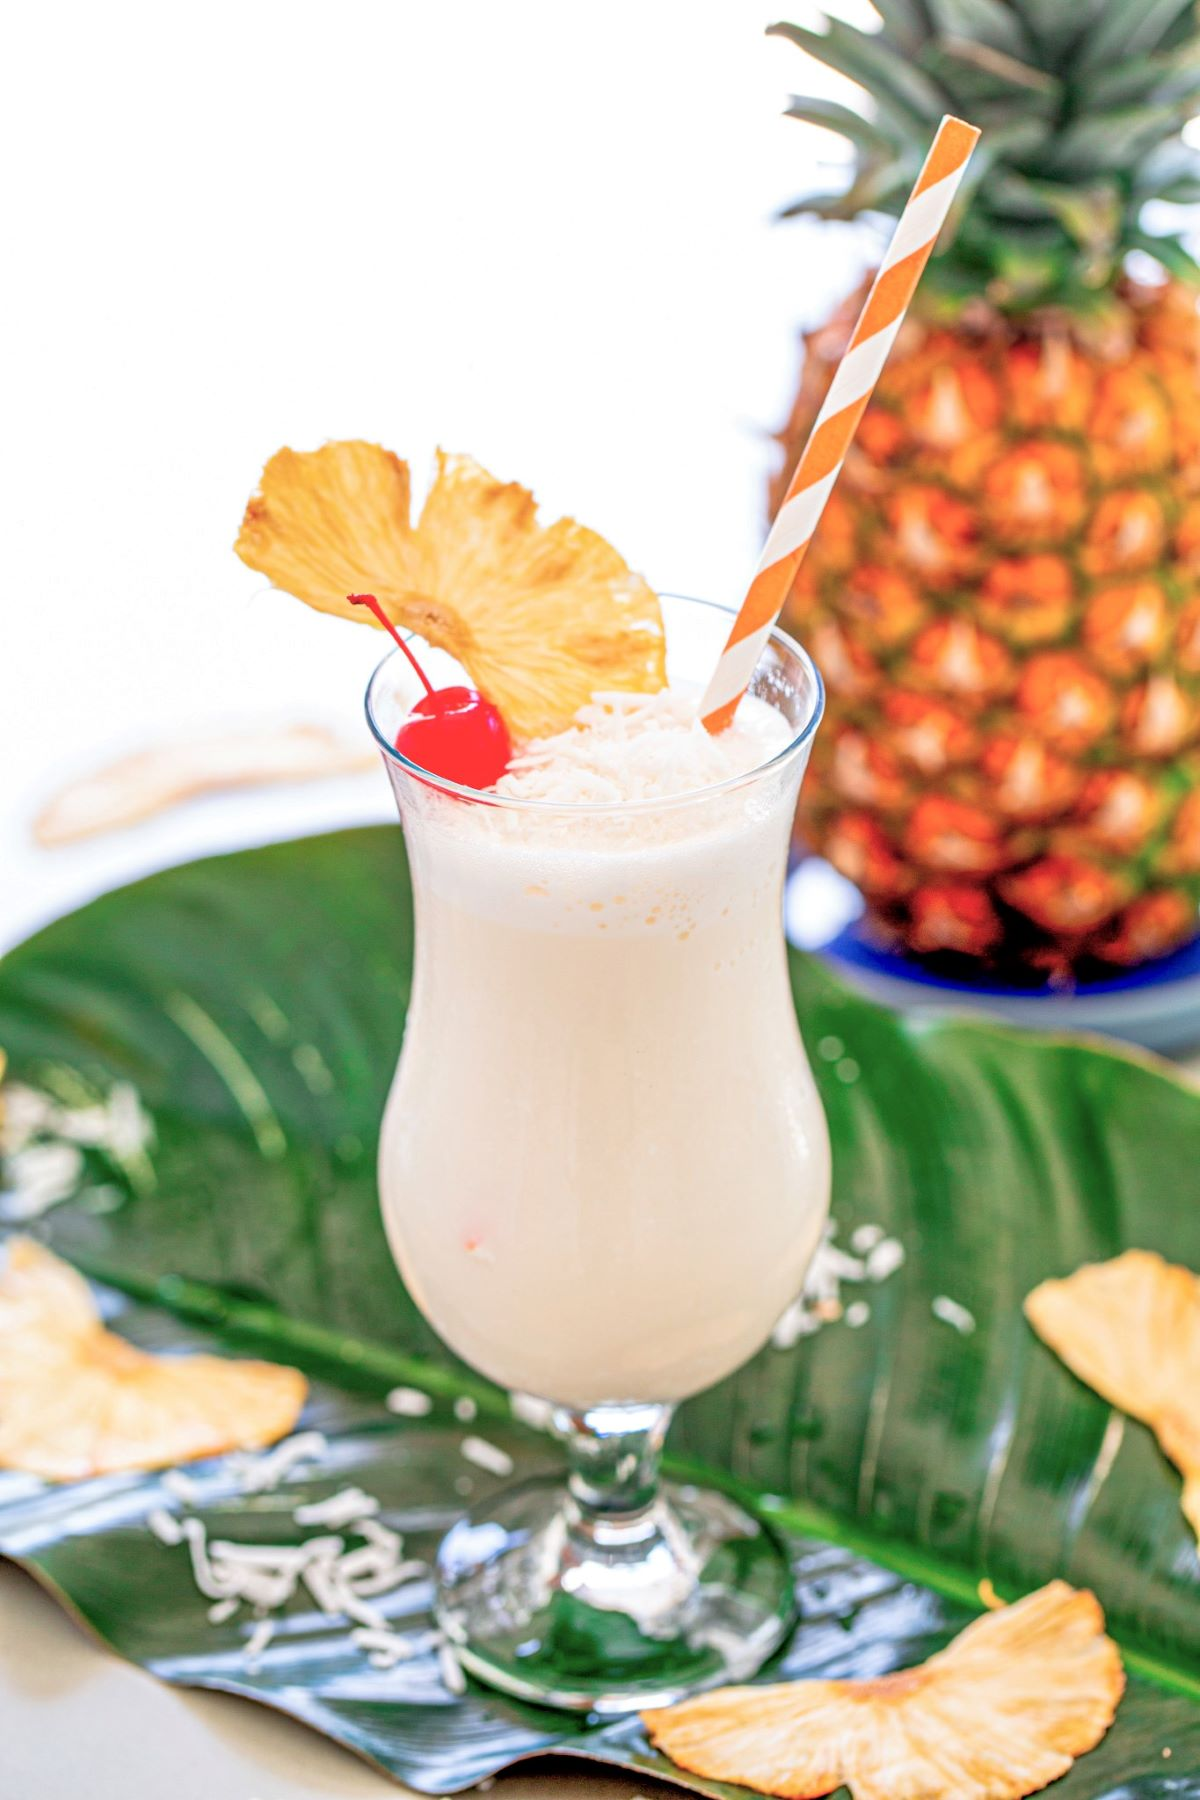 A pina colada garnished with a red cherry, dried pineapple wedge, and shredded coconut.